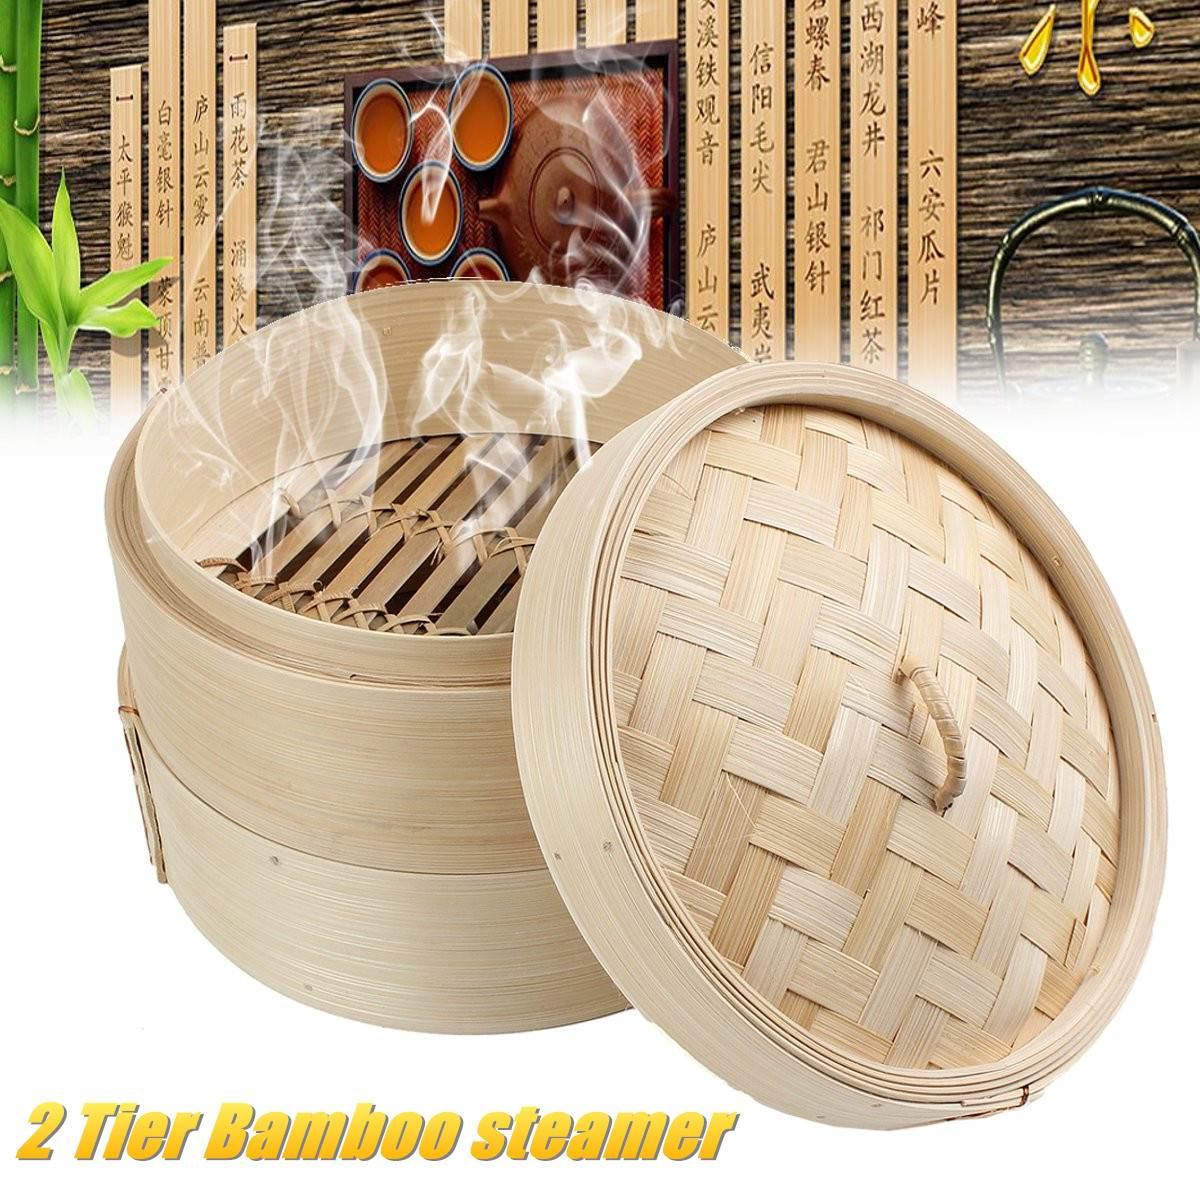 New 2 Tier Cooking Bamboo Steamer For Food Dumplings Fish Rice Vegetable Handmade Steamer Basket Tray Home Kitchen Cooking Tool